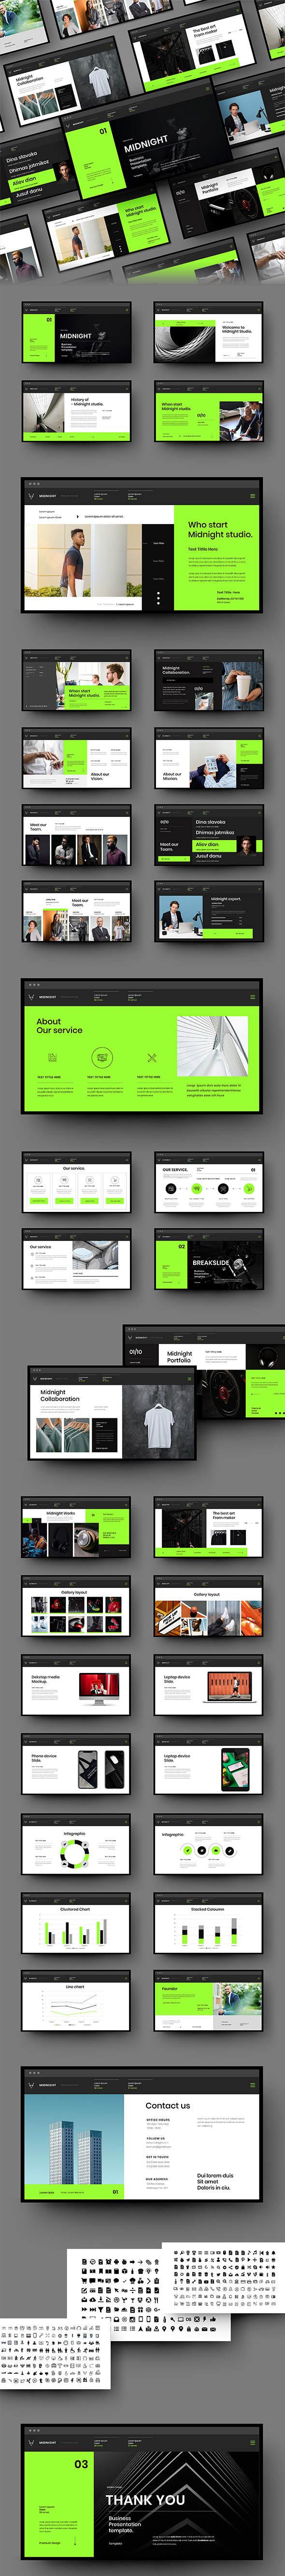 Midnight – Business Google Slides Template